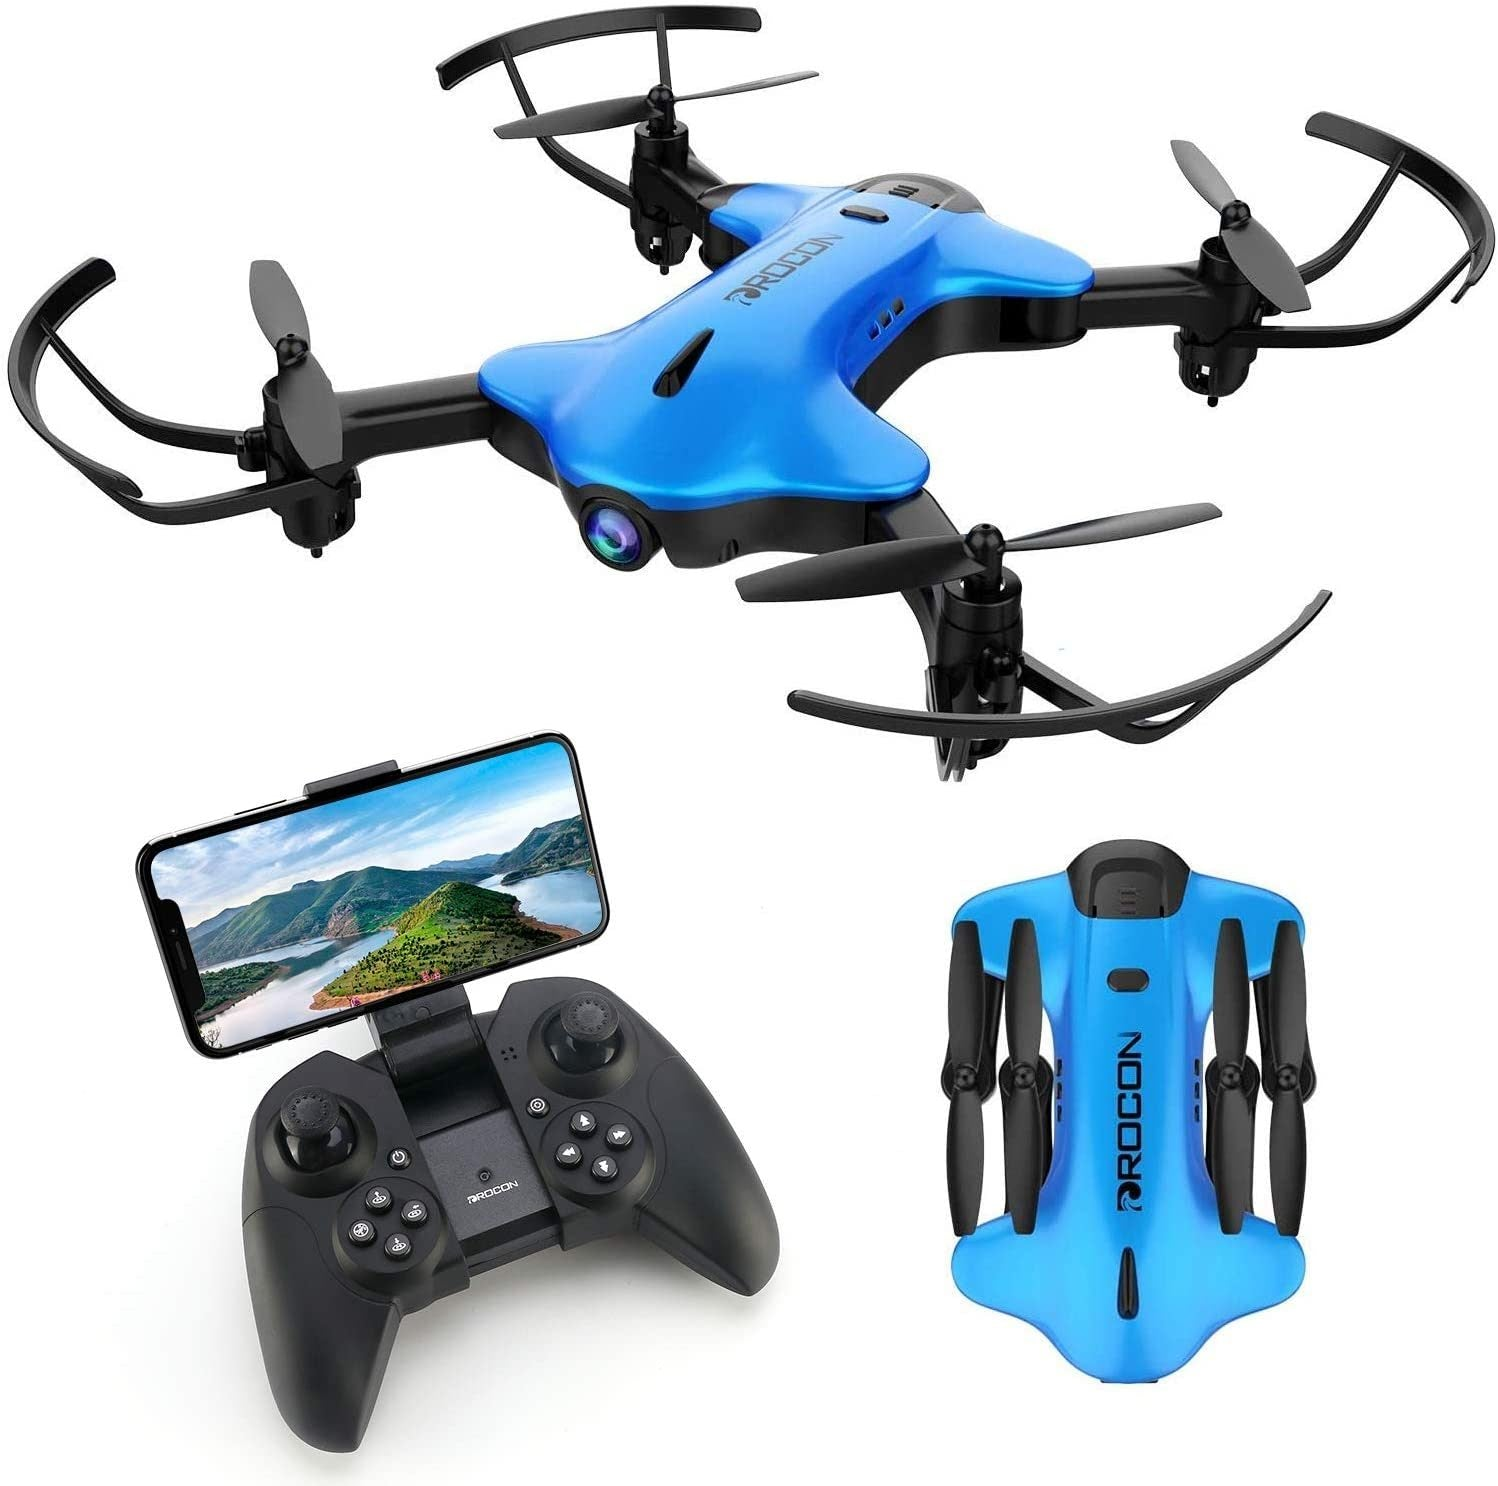 DROCON Ninja Drone for Kids & Beginners FPV RC Drone with 1080P HD Wi-Fi Camera